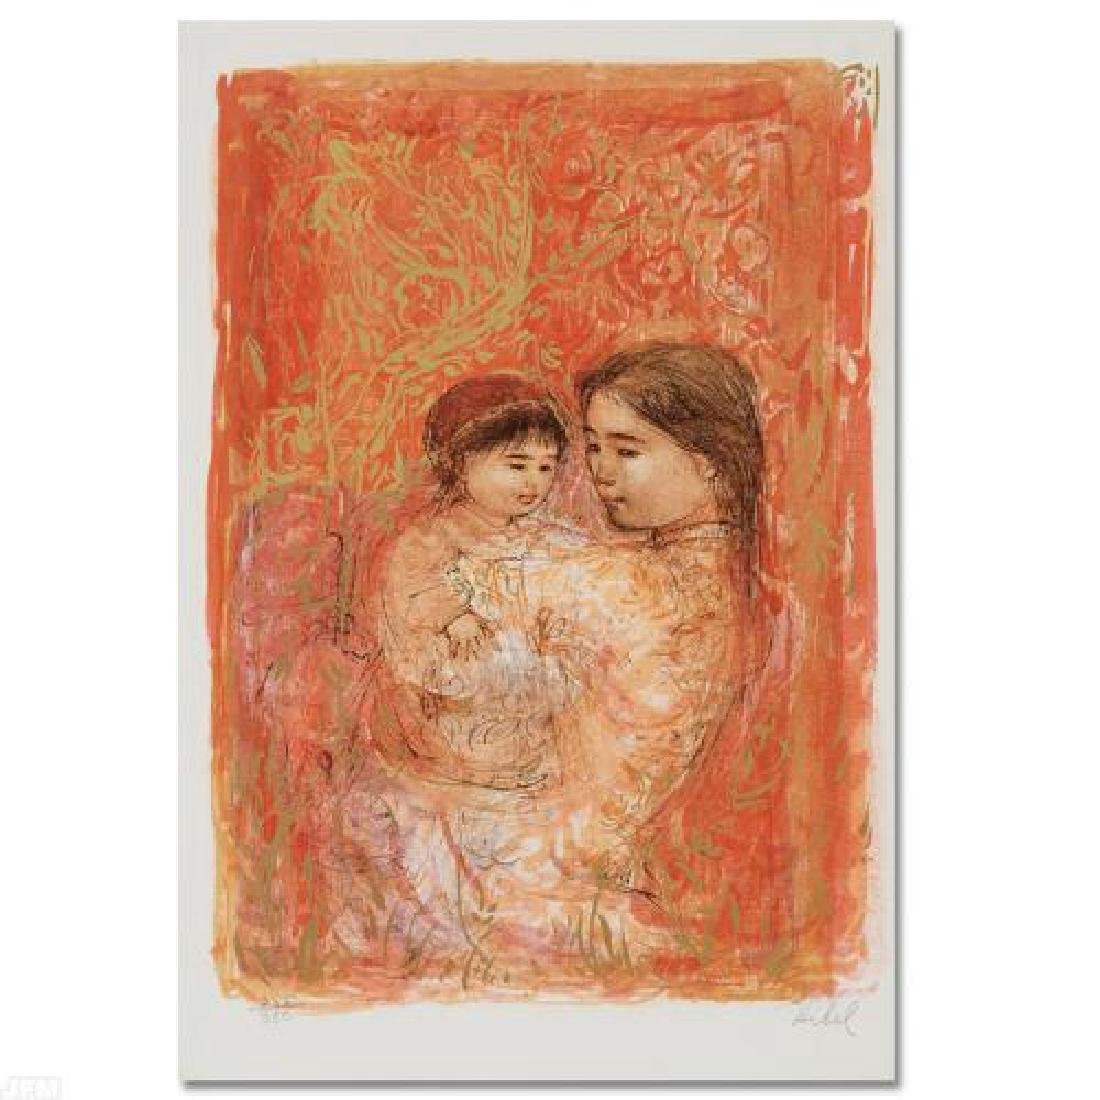 Thai Family Limited Edition Lithograph by Edna Hibel